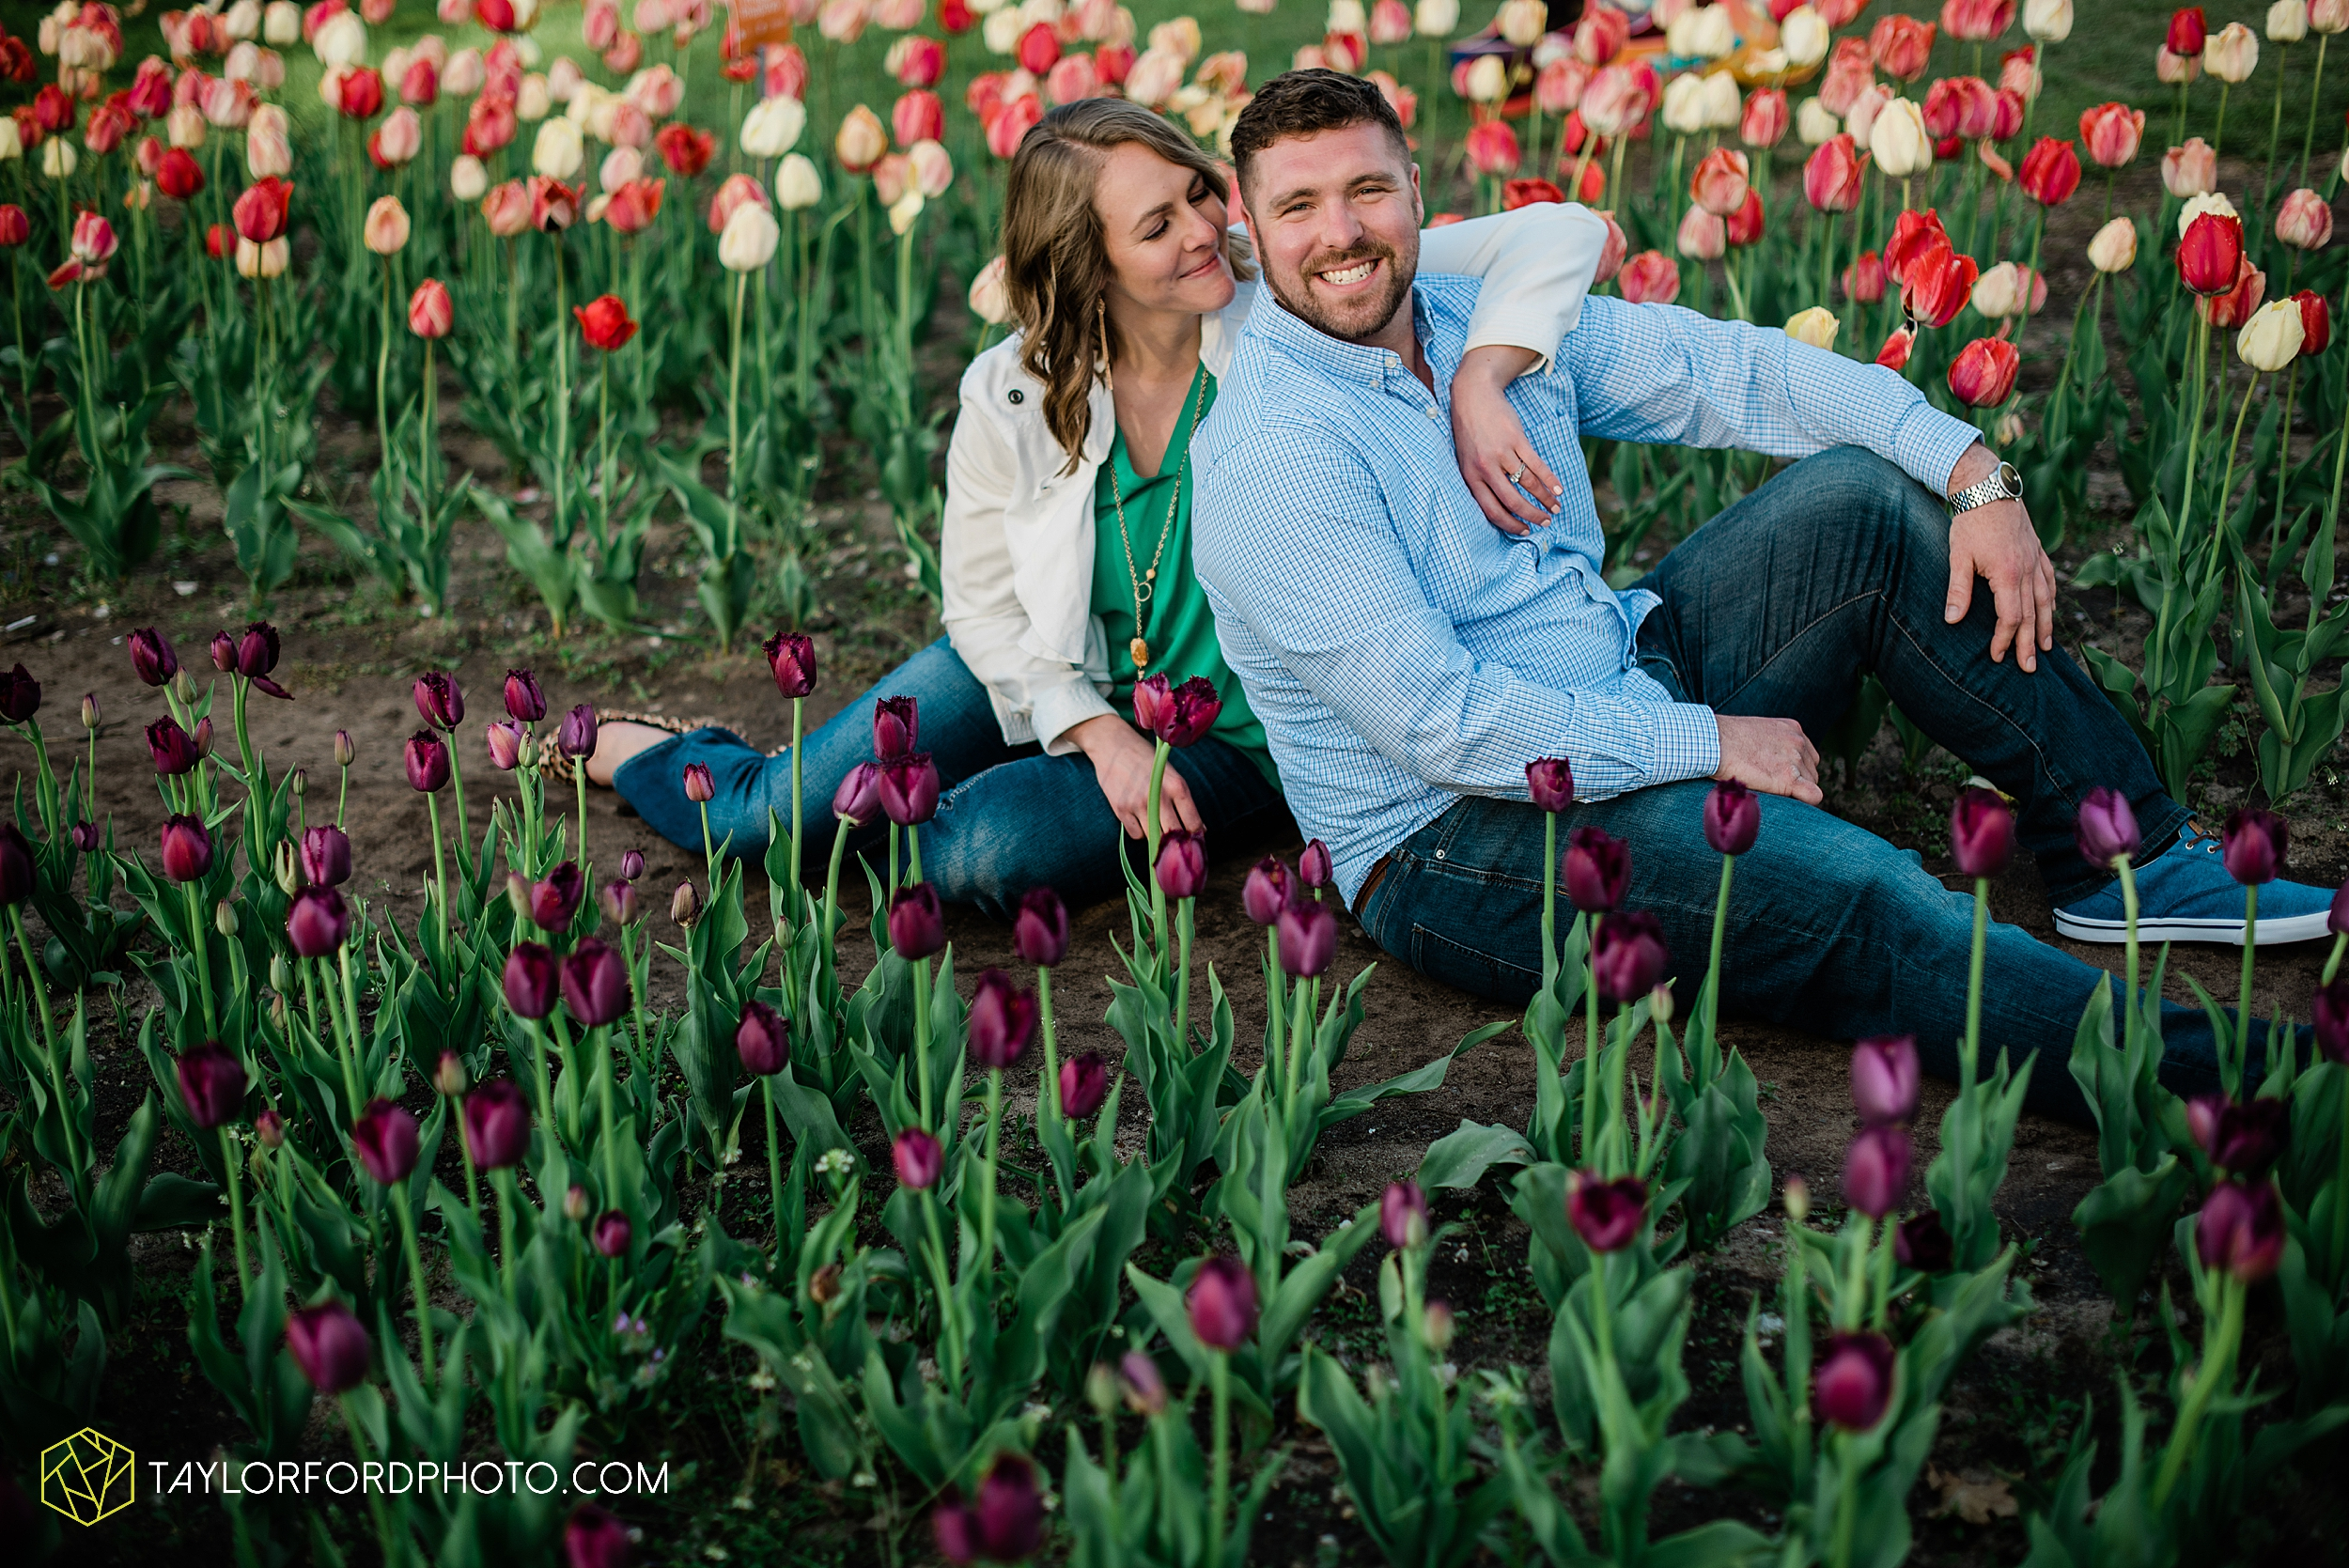 holland-michigan-tulip-time-downtown-hope-college-riverside-park-laketown-beach-lake-michigan-engagement-photographer-photography-taylor-ford-hirschy-photographer_2618.jpg